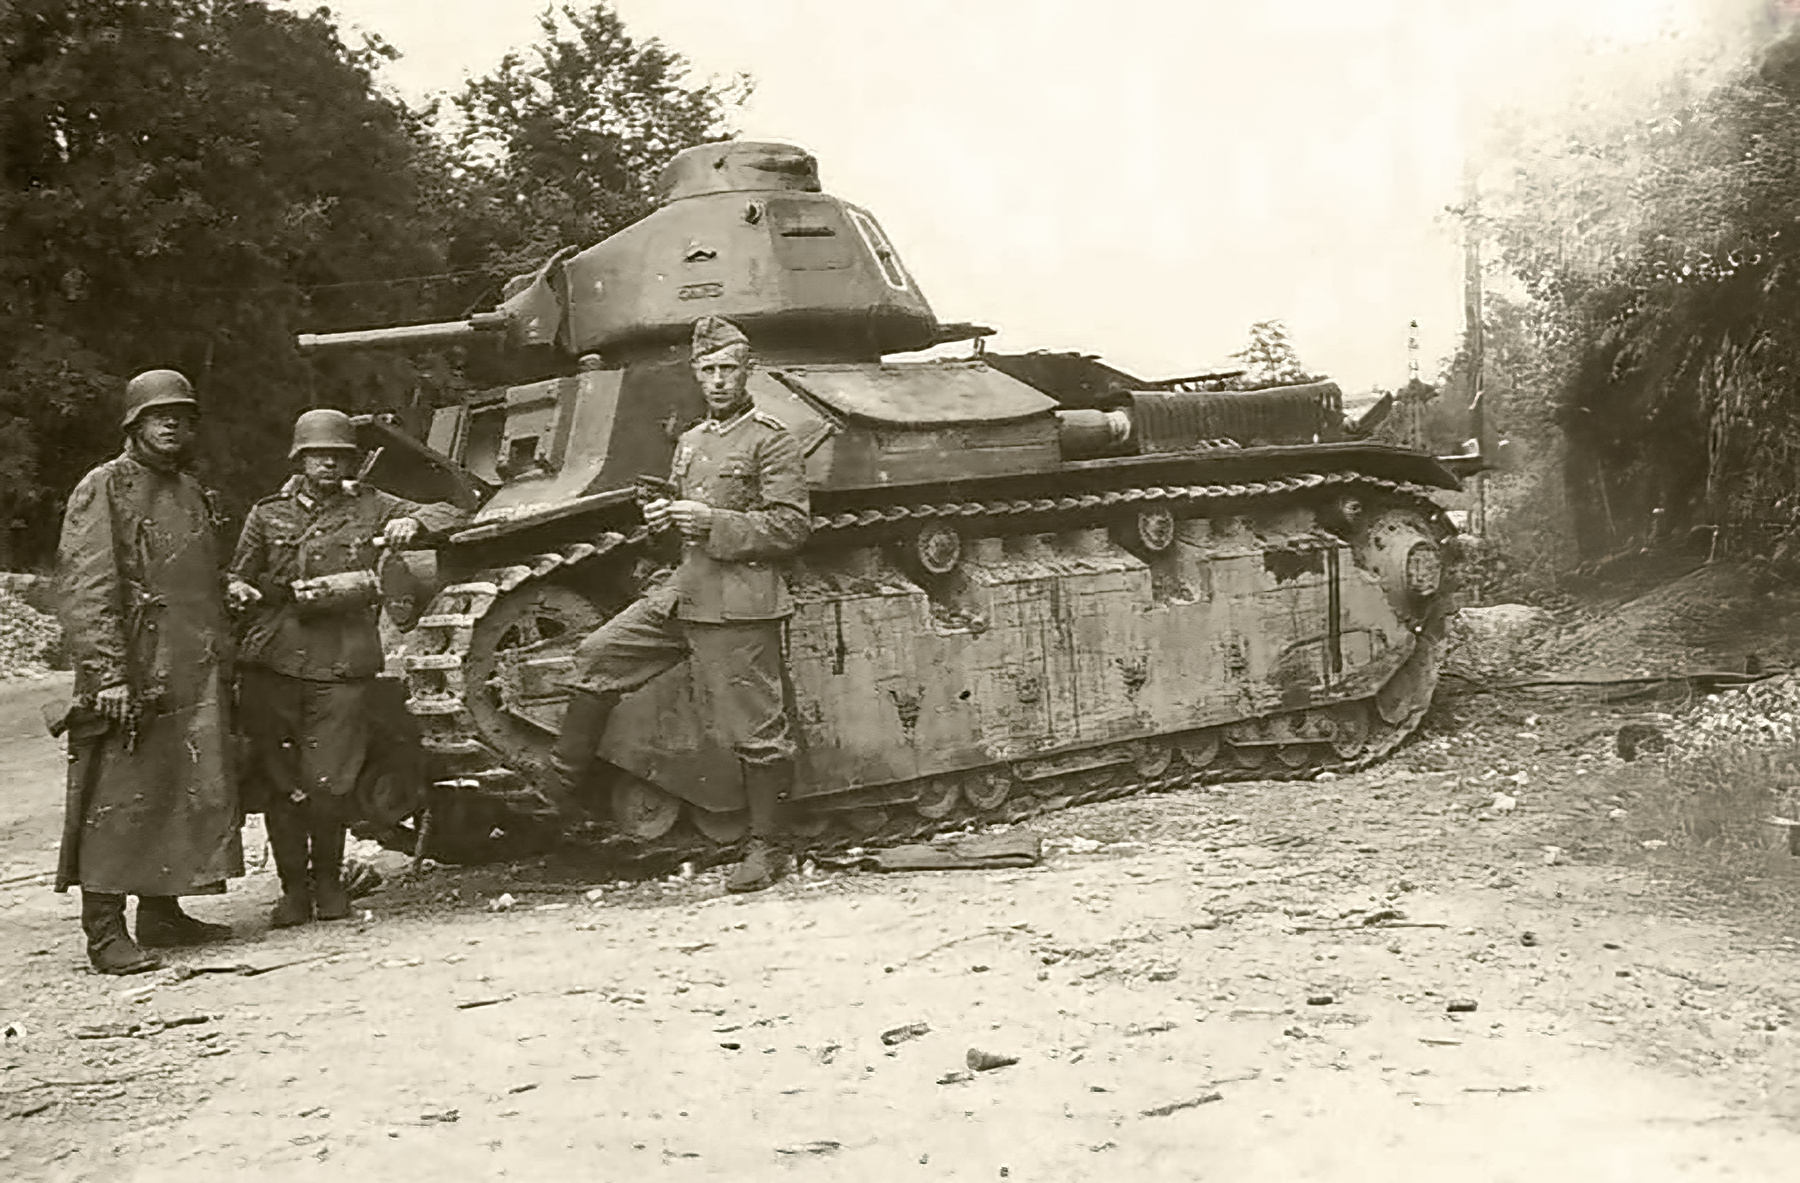 French Army Renault D2 tank captured battle of France 1940 web 01